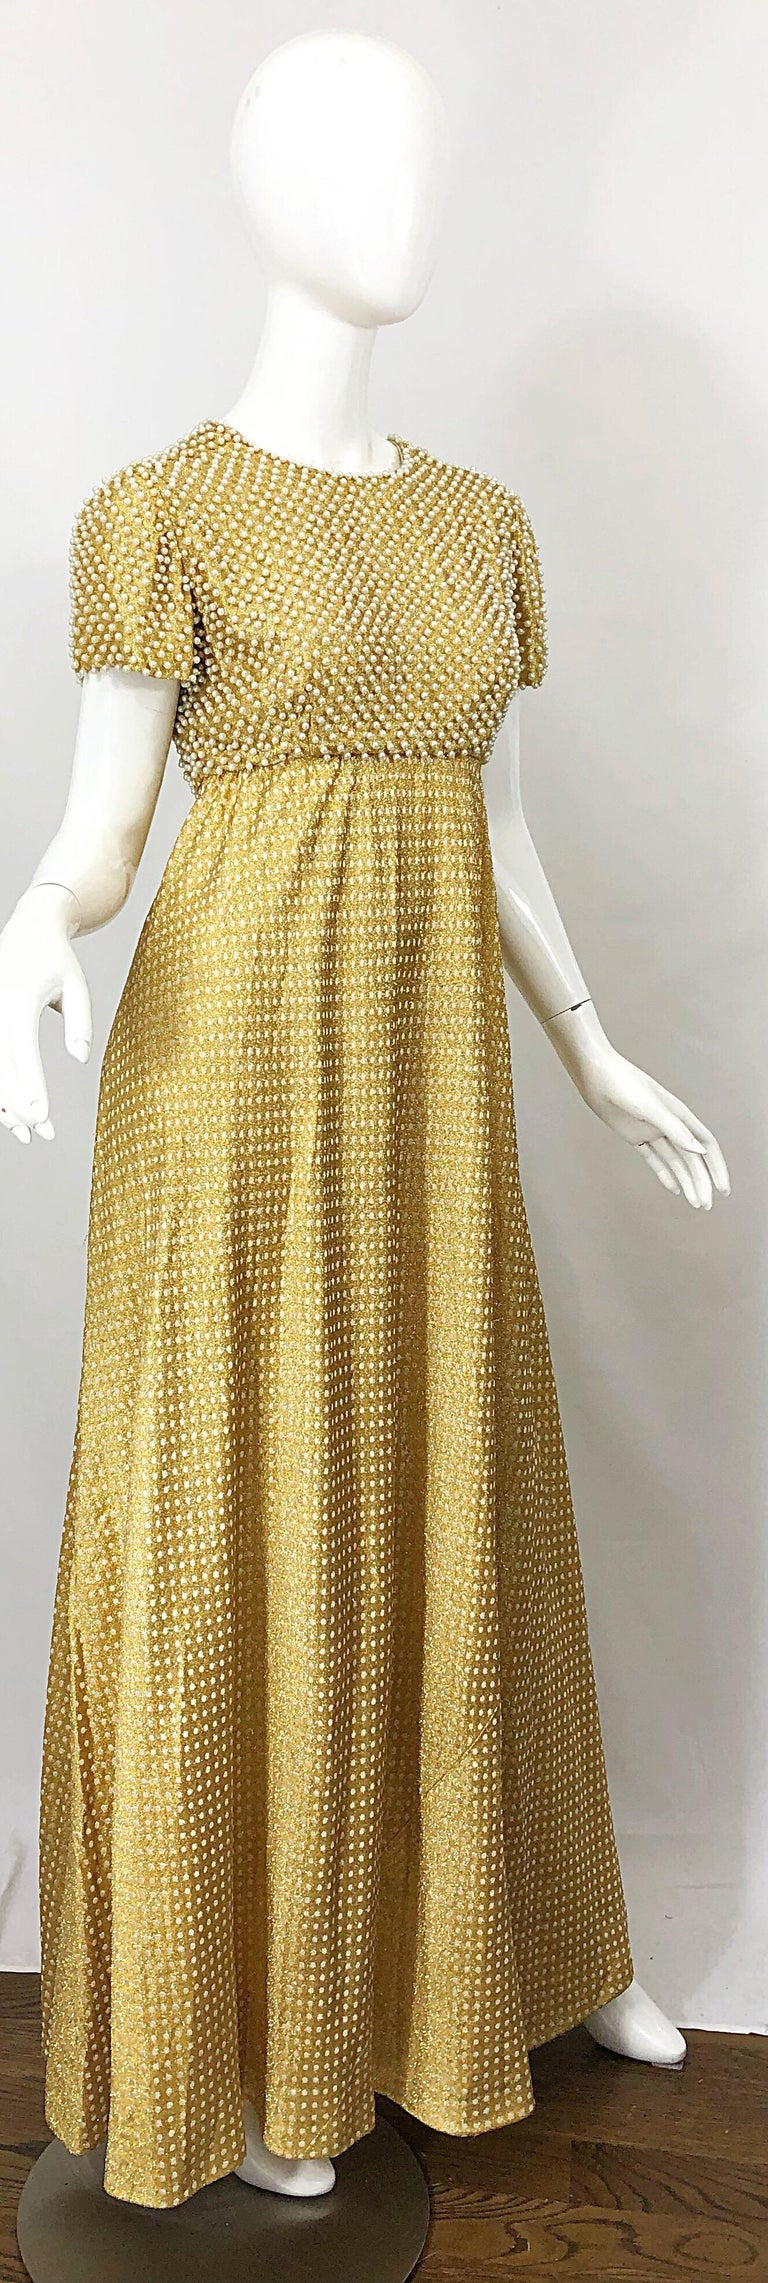 1960s Geoffrey Beene Couture Gold Silk Pearl Encrusted Vintage 60s Gown Dress For Sale 8